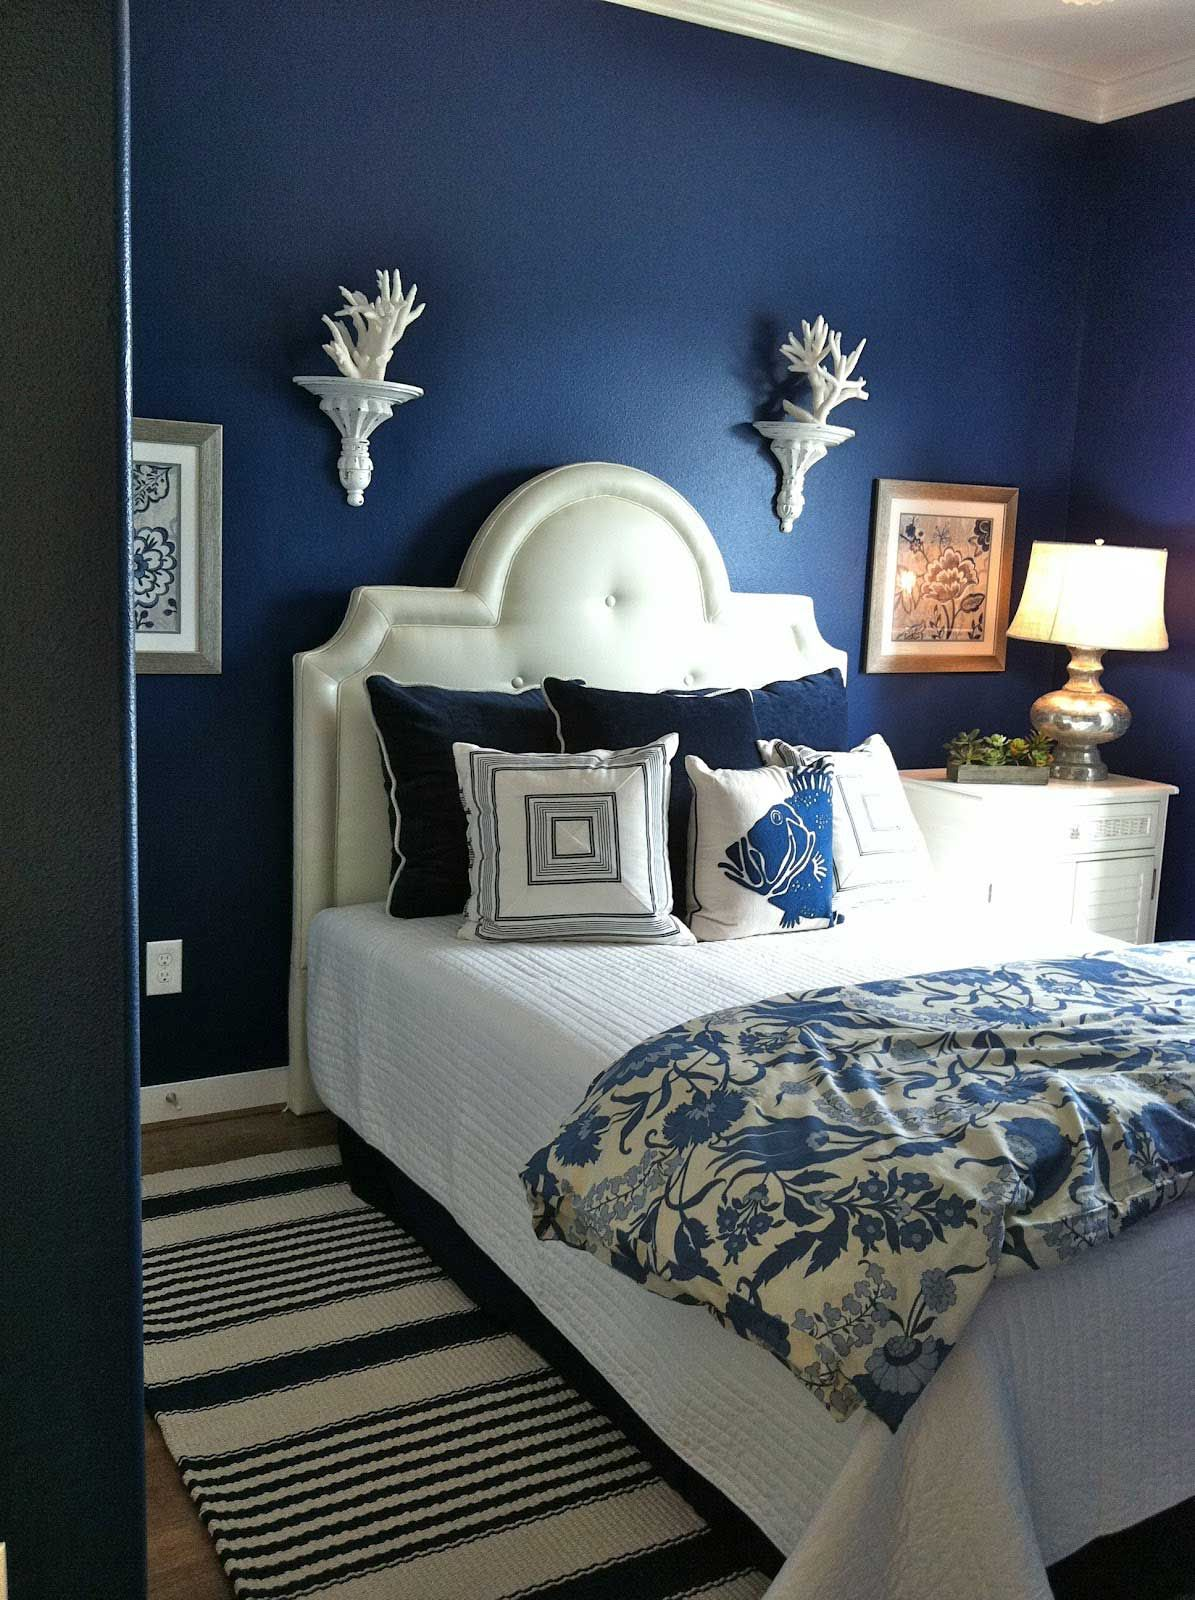 Pictures Of Blue Bedrooms B53313e97704f87558e7332d00e864bd Jpg